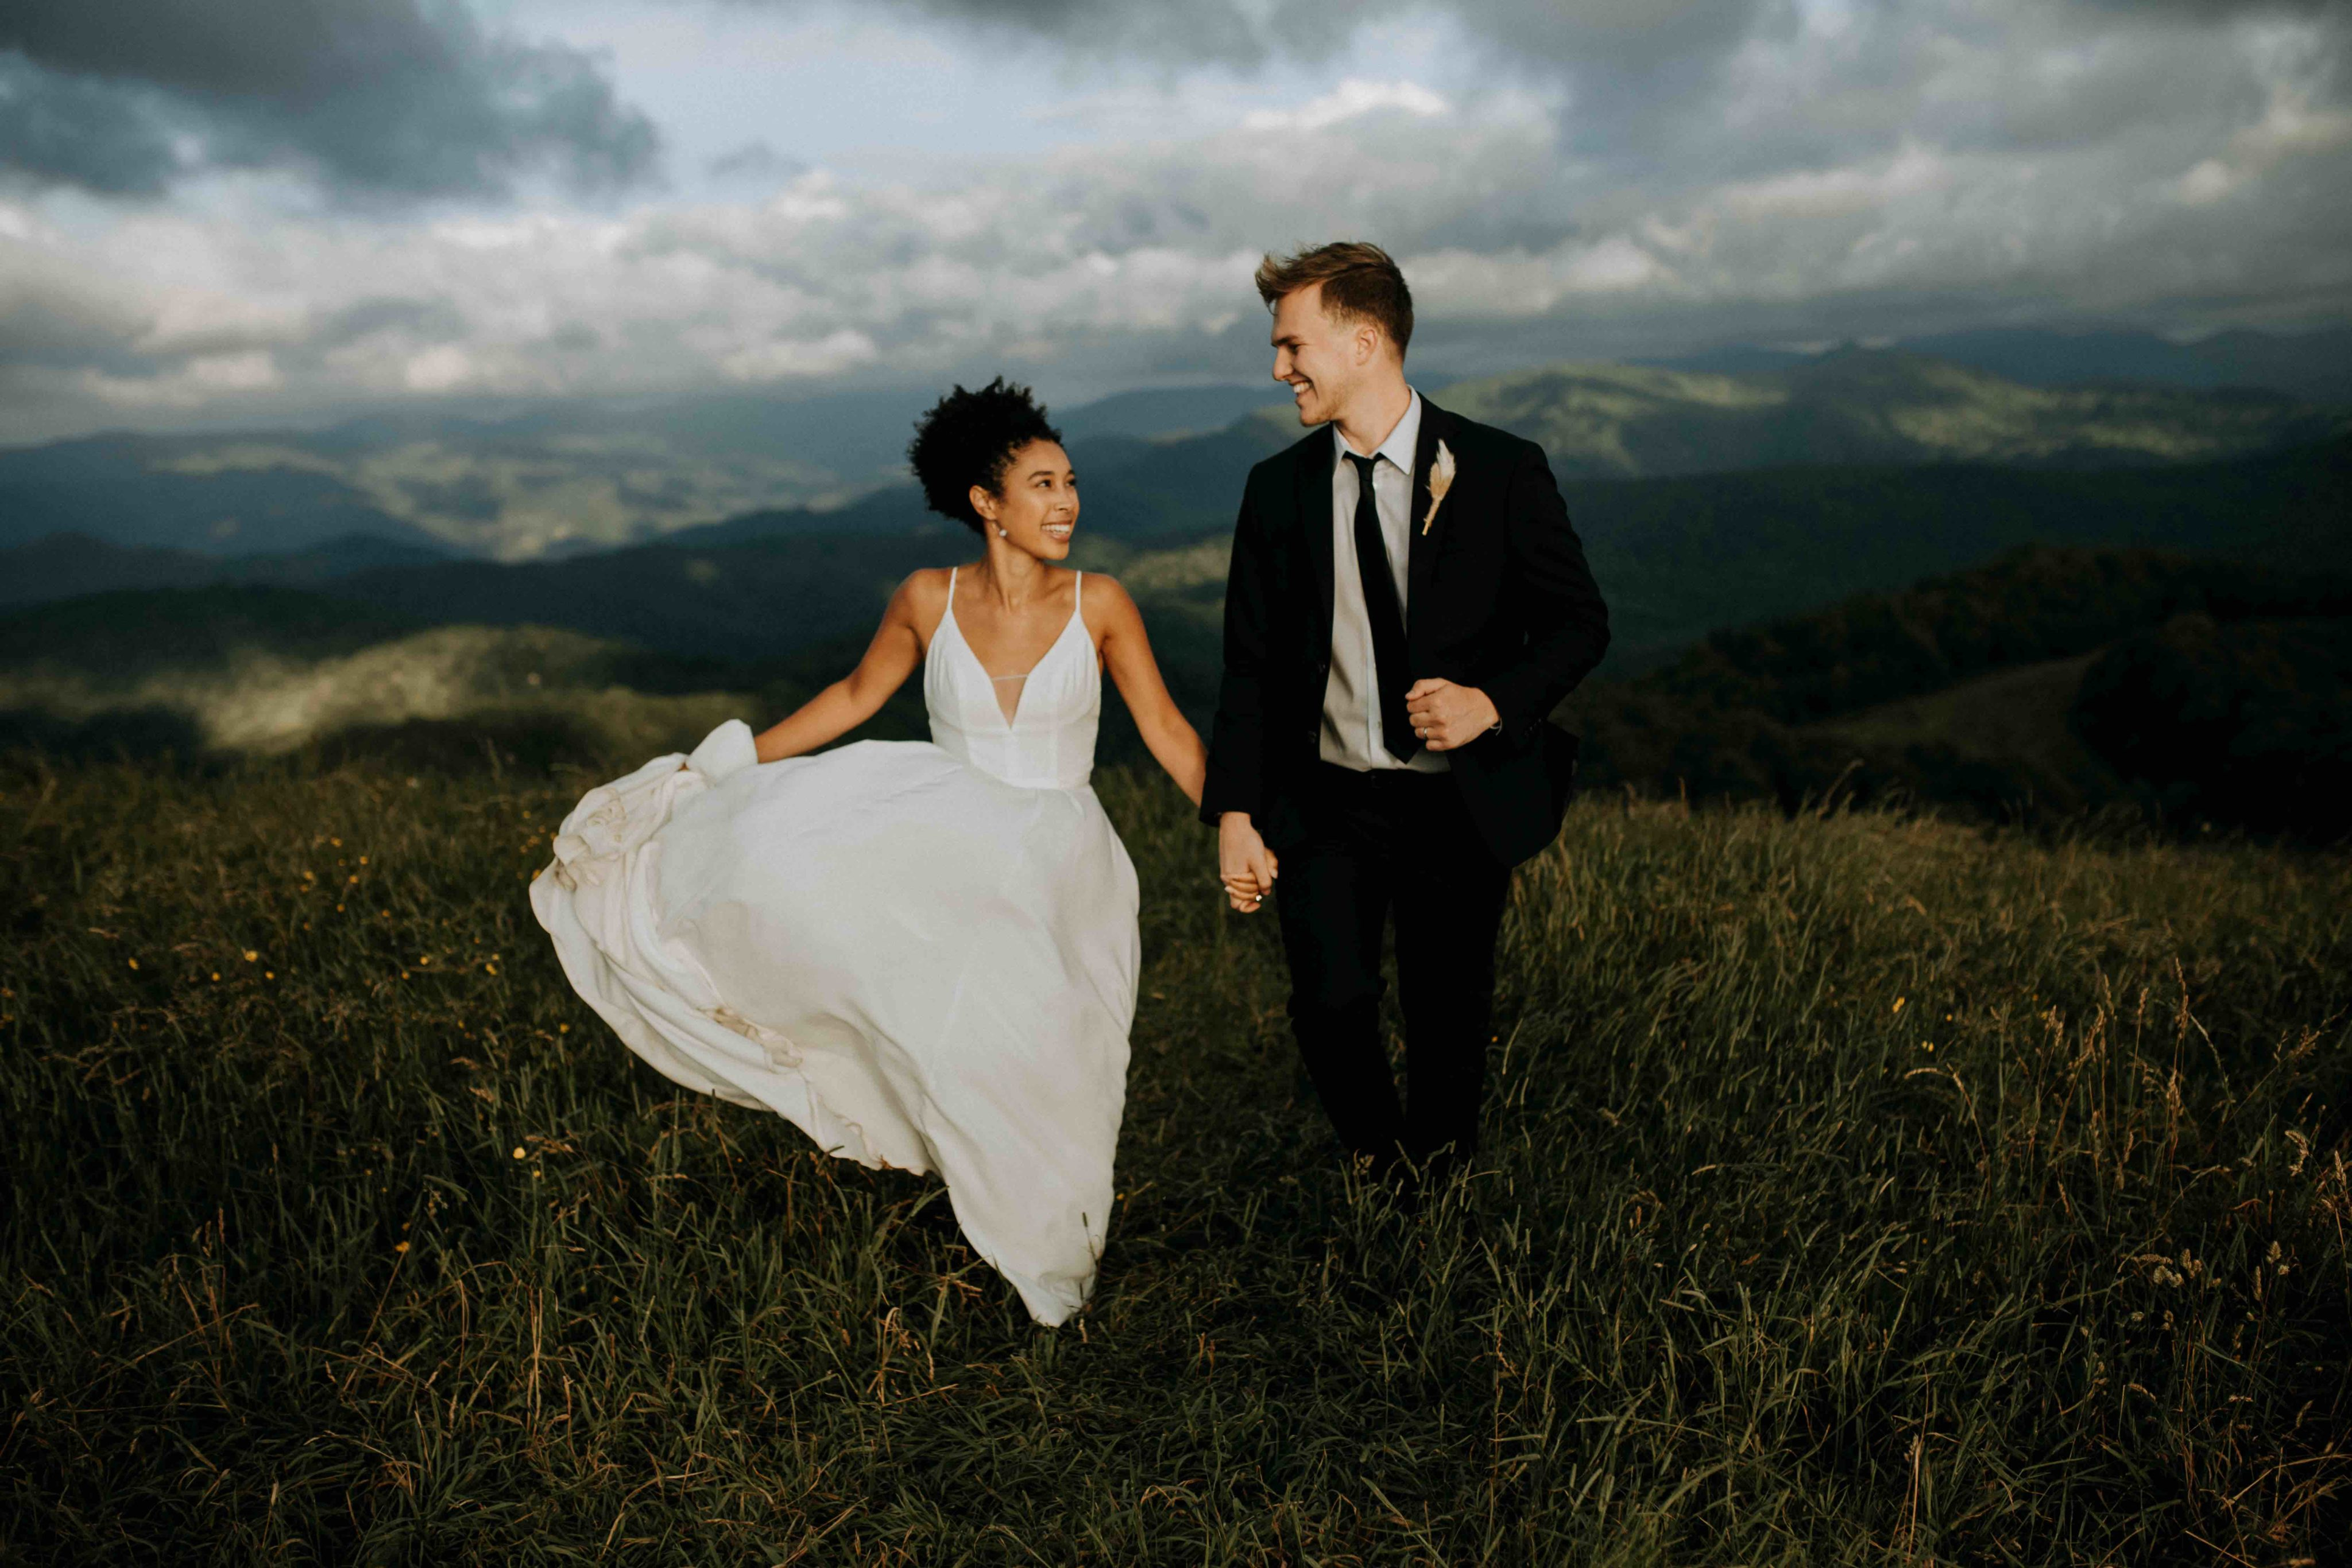 Breanna and Dalton running on a mountain top in their wedding clothes